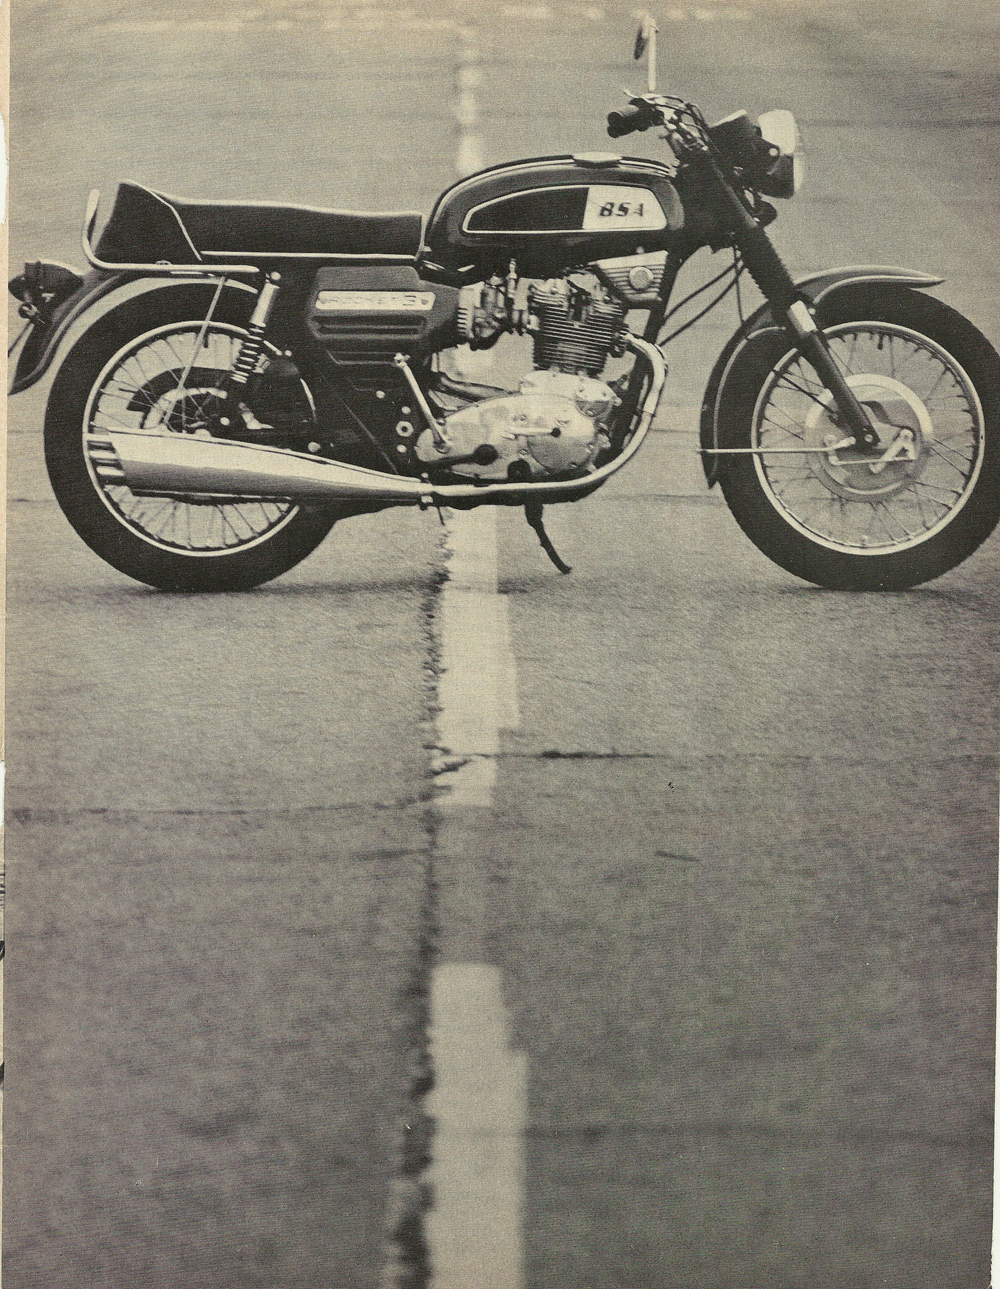 1969 BSA Rocket 3 road test 2.jpg